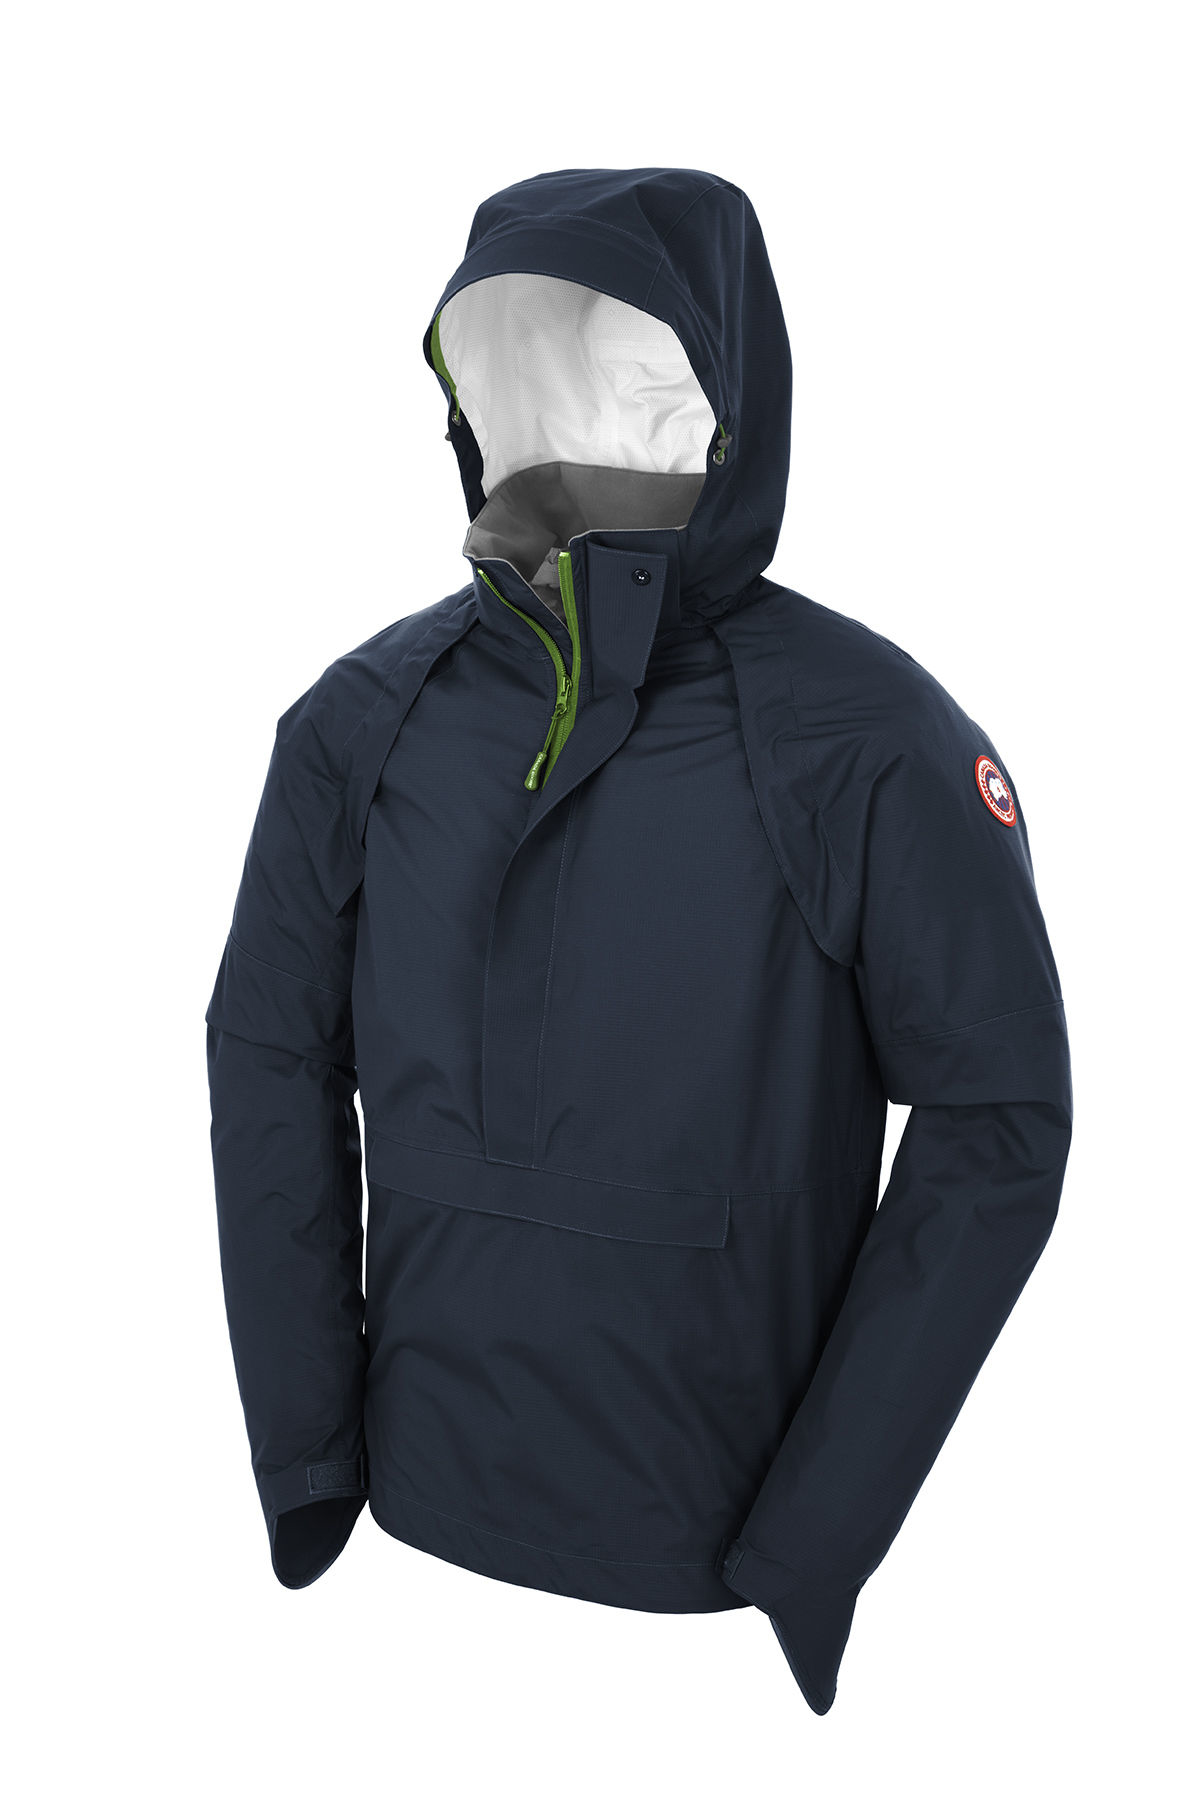 Canada Goose hats outlet cheap - Battenwear Packable Anorak in Blue for Men (BLUE SKY) - Save 40 ...